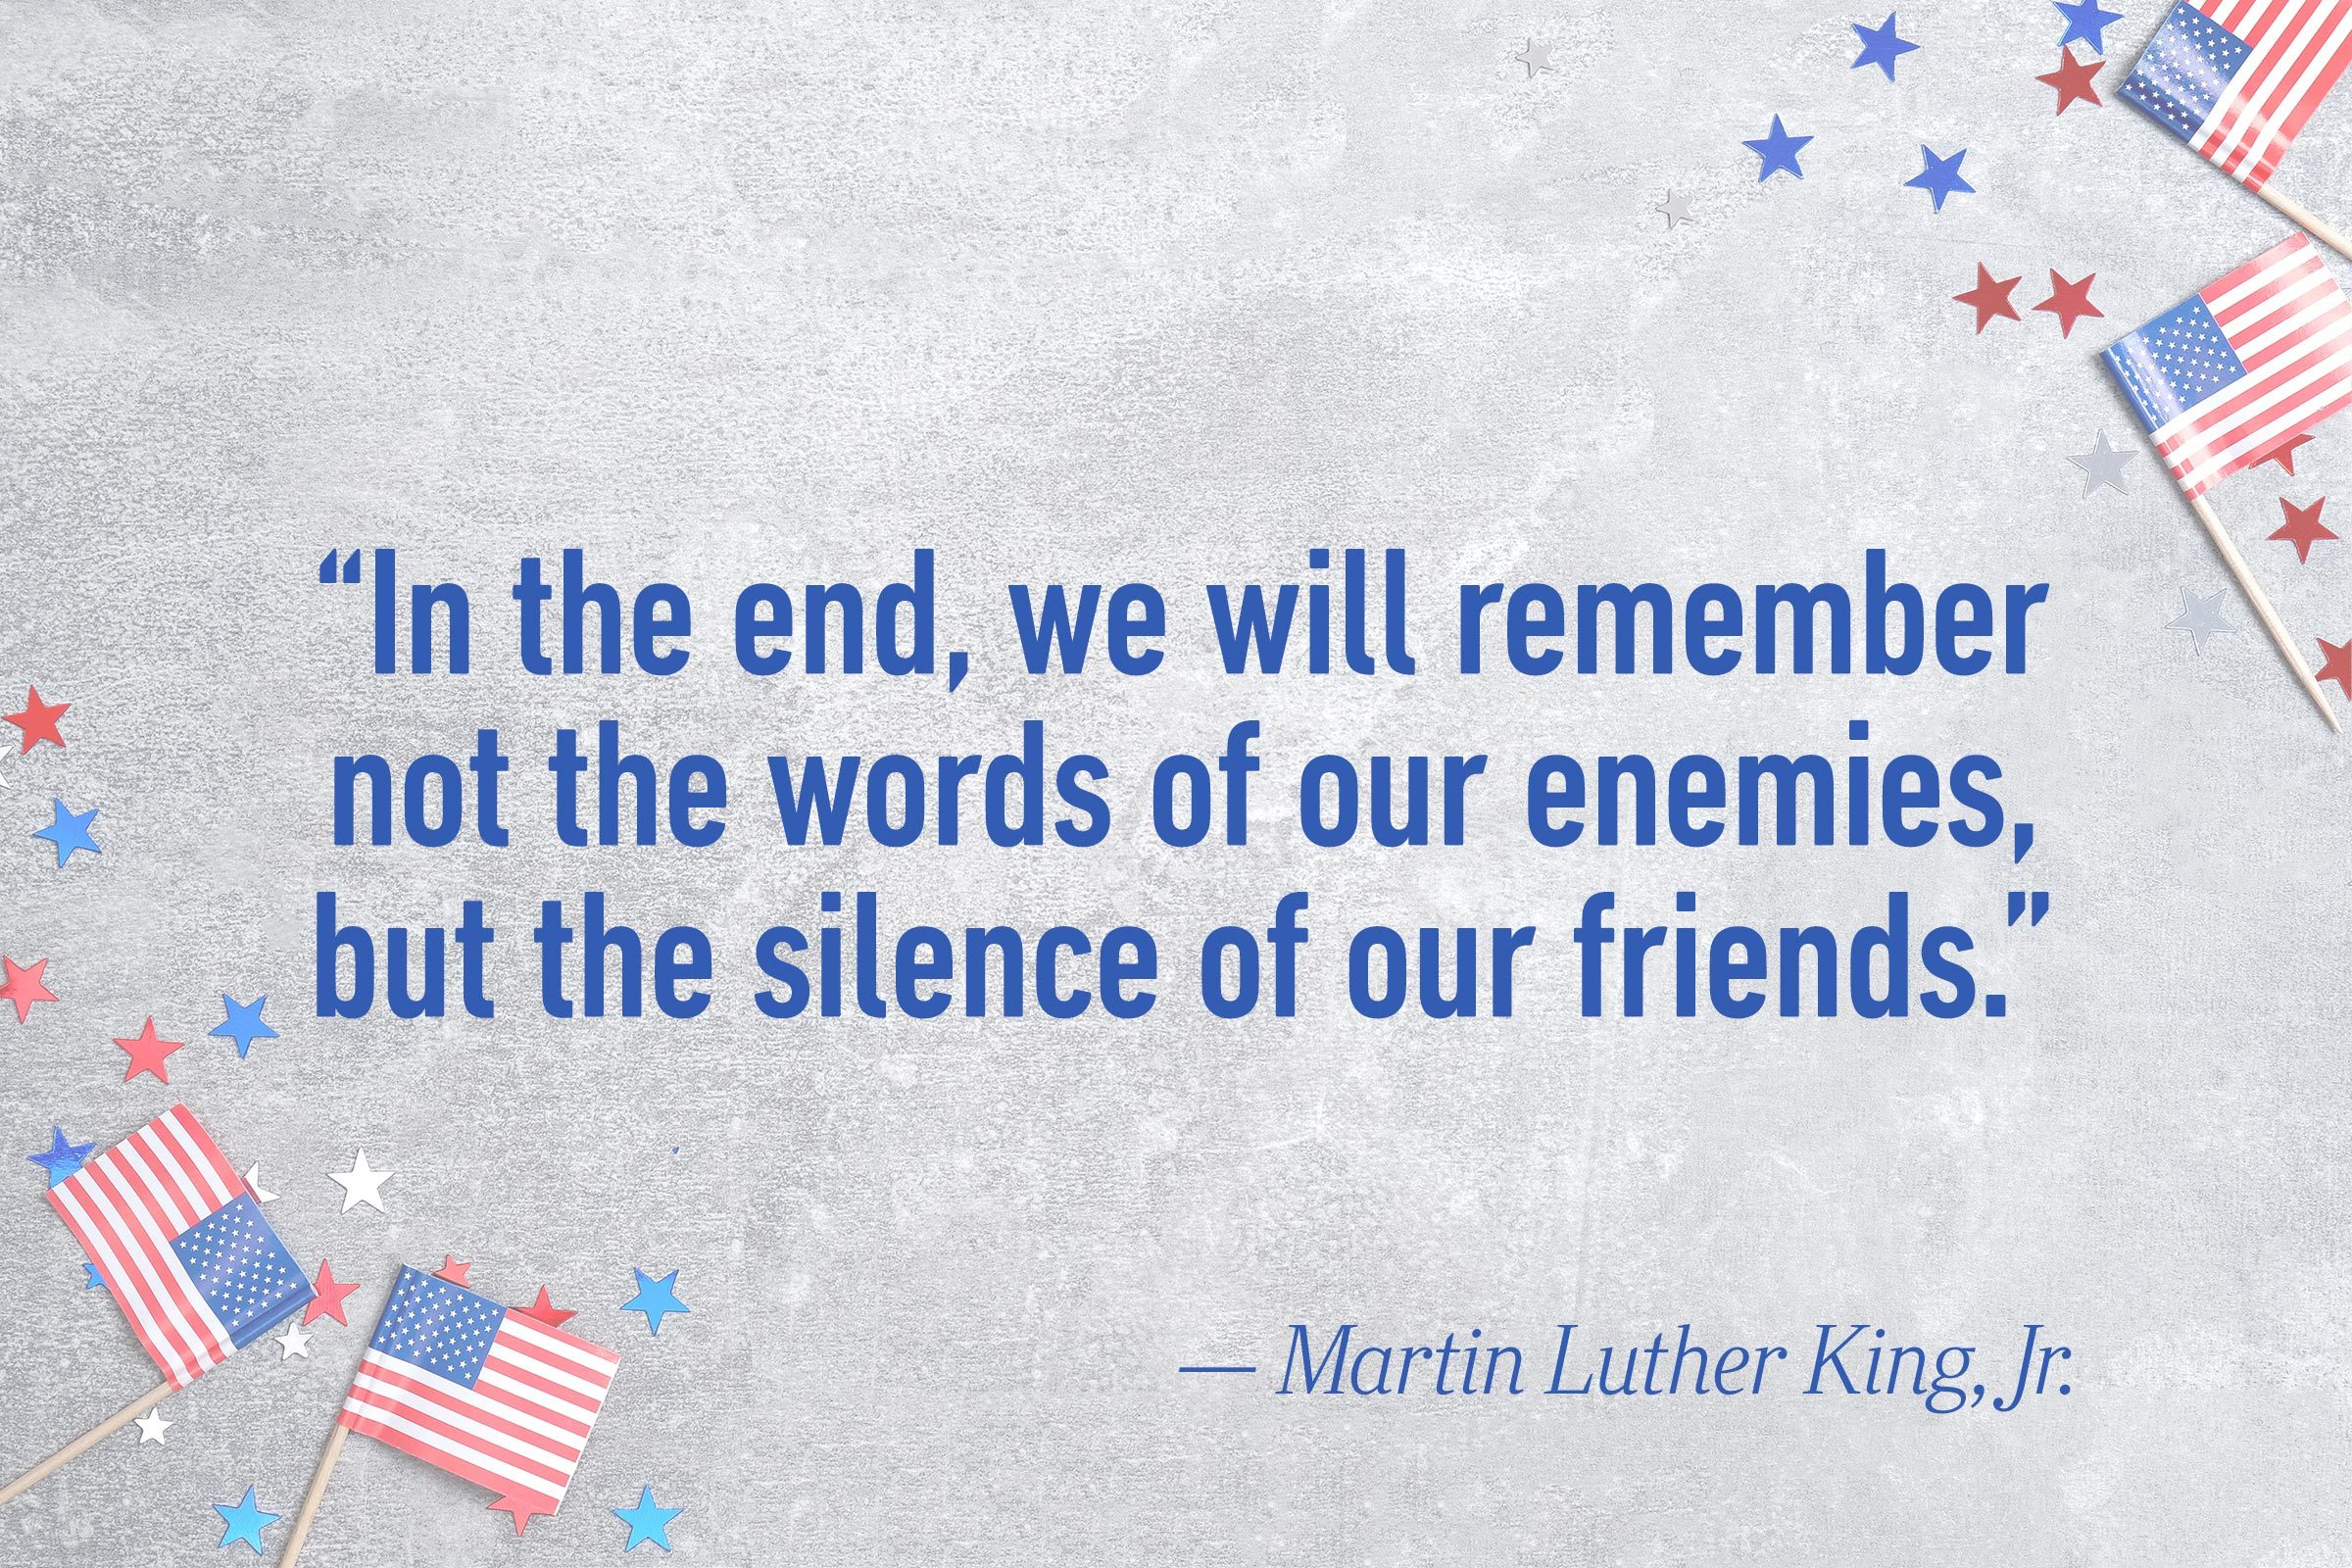 """In the end, we will remember not the words of our enemies, but the silence of our friends.""—Martin Luther King, Jr."